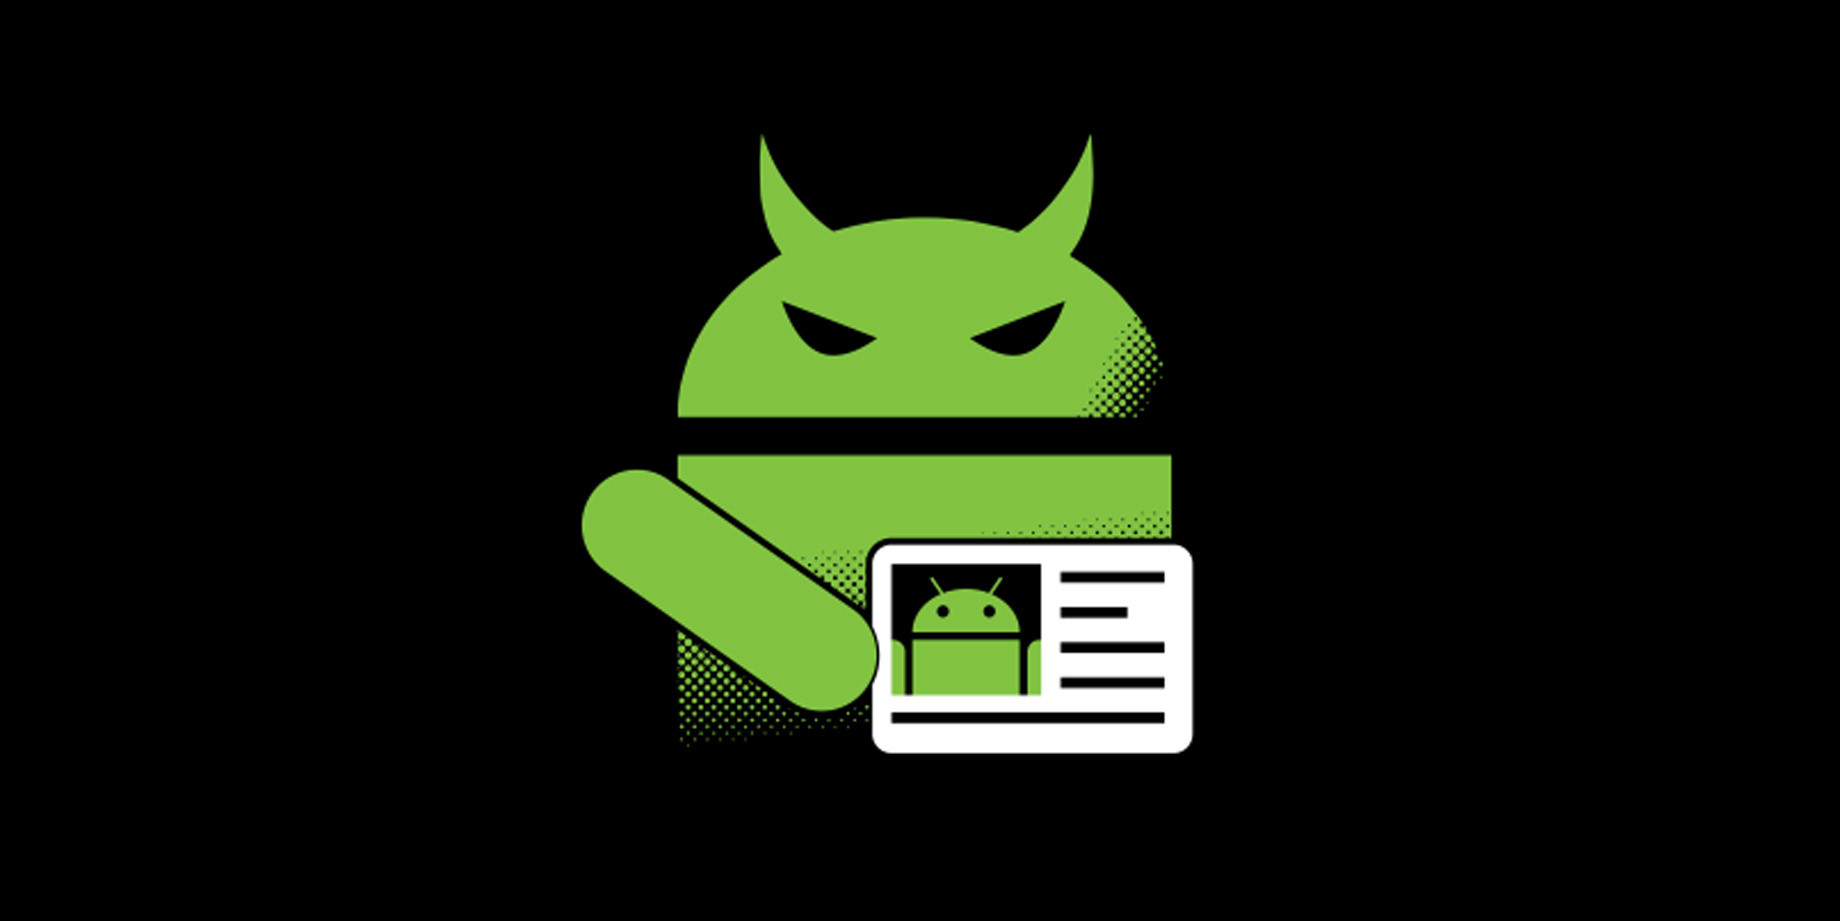 1487658364_android-virus.jpg